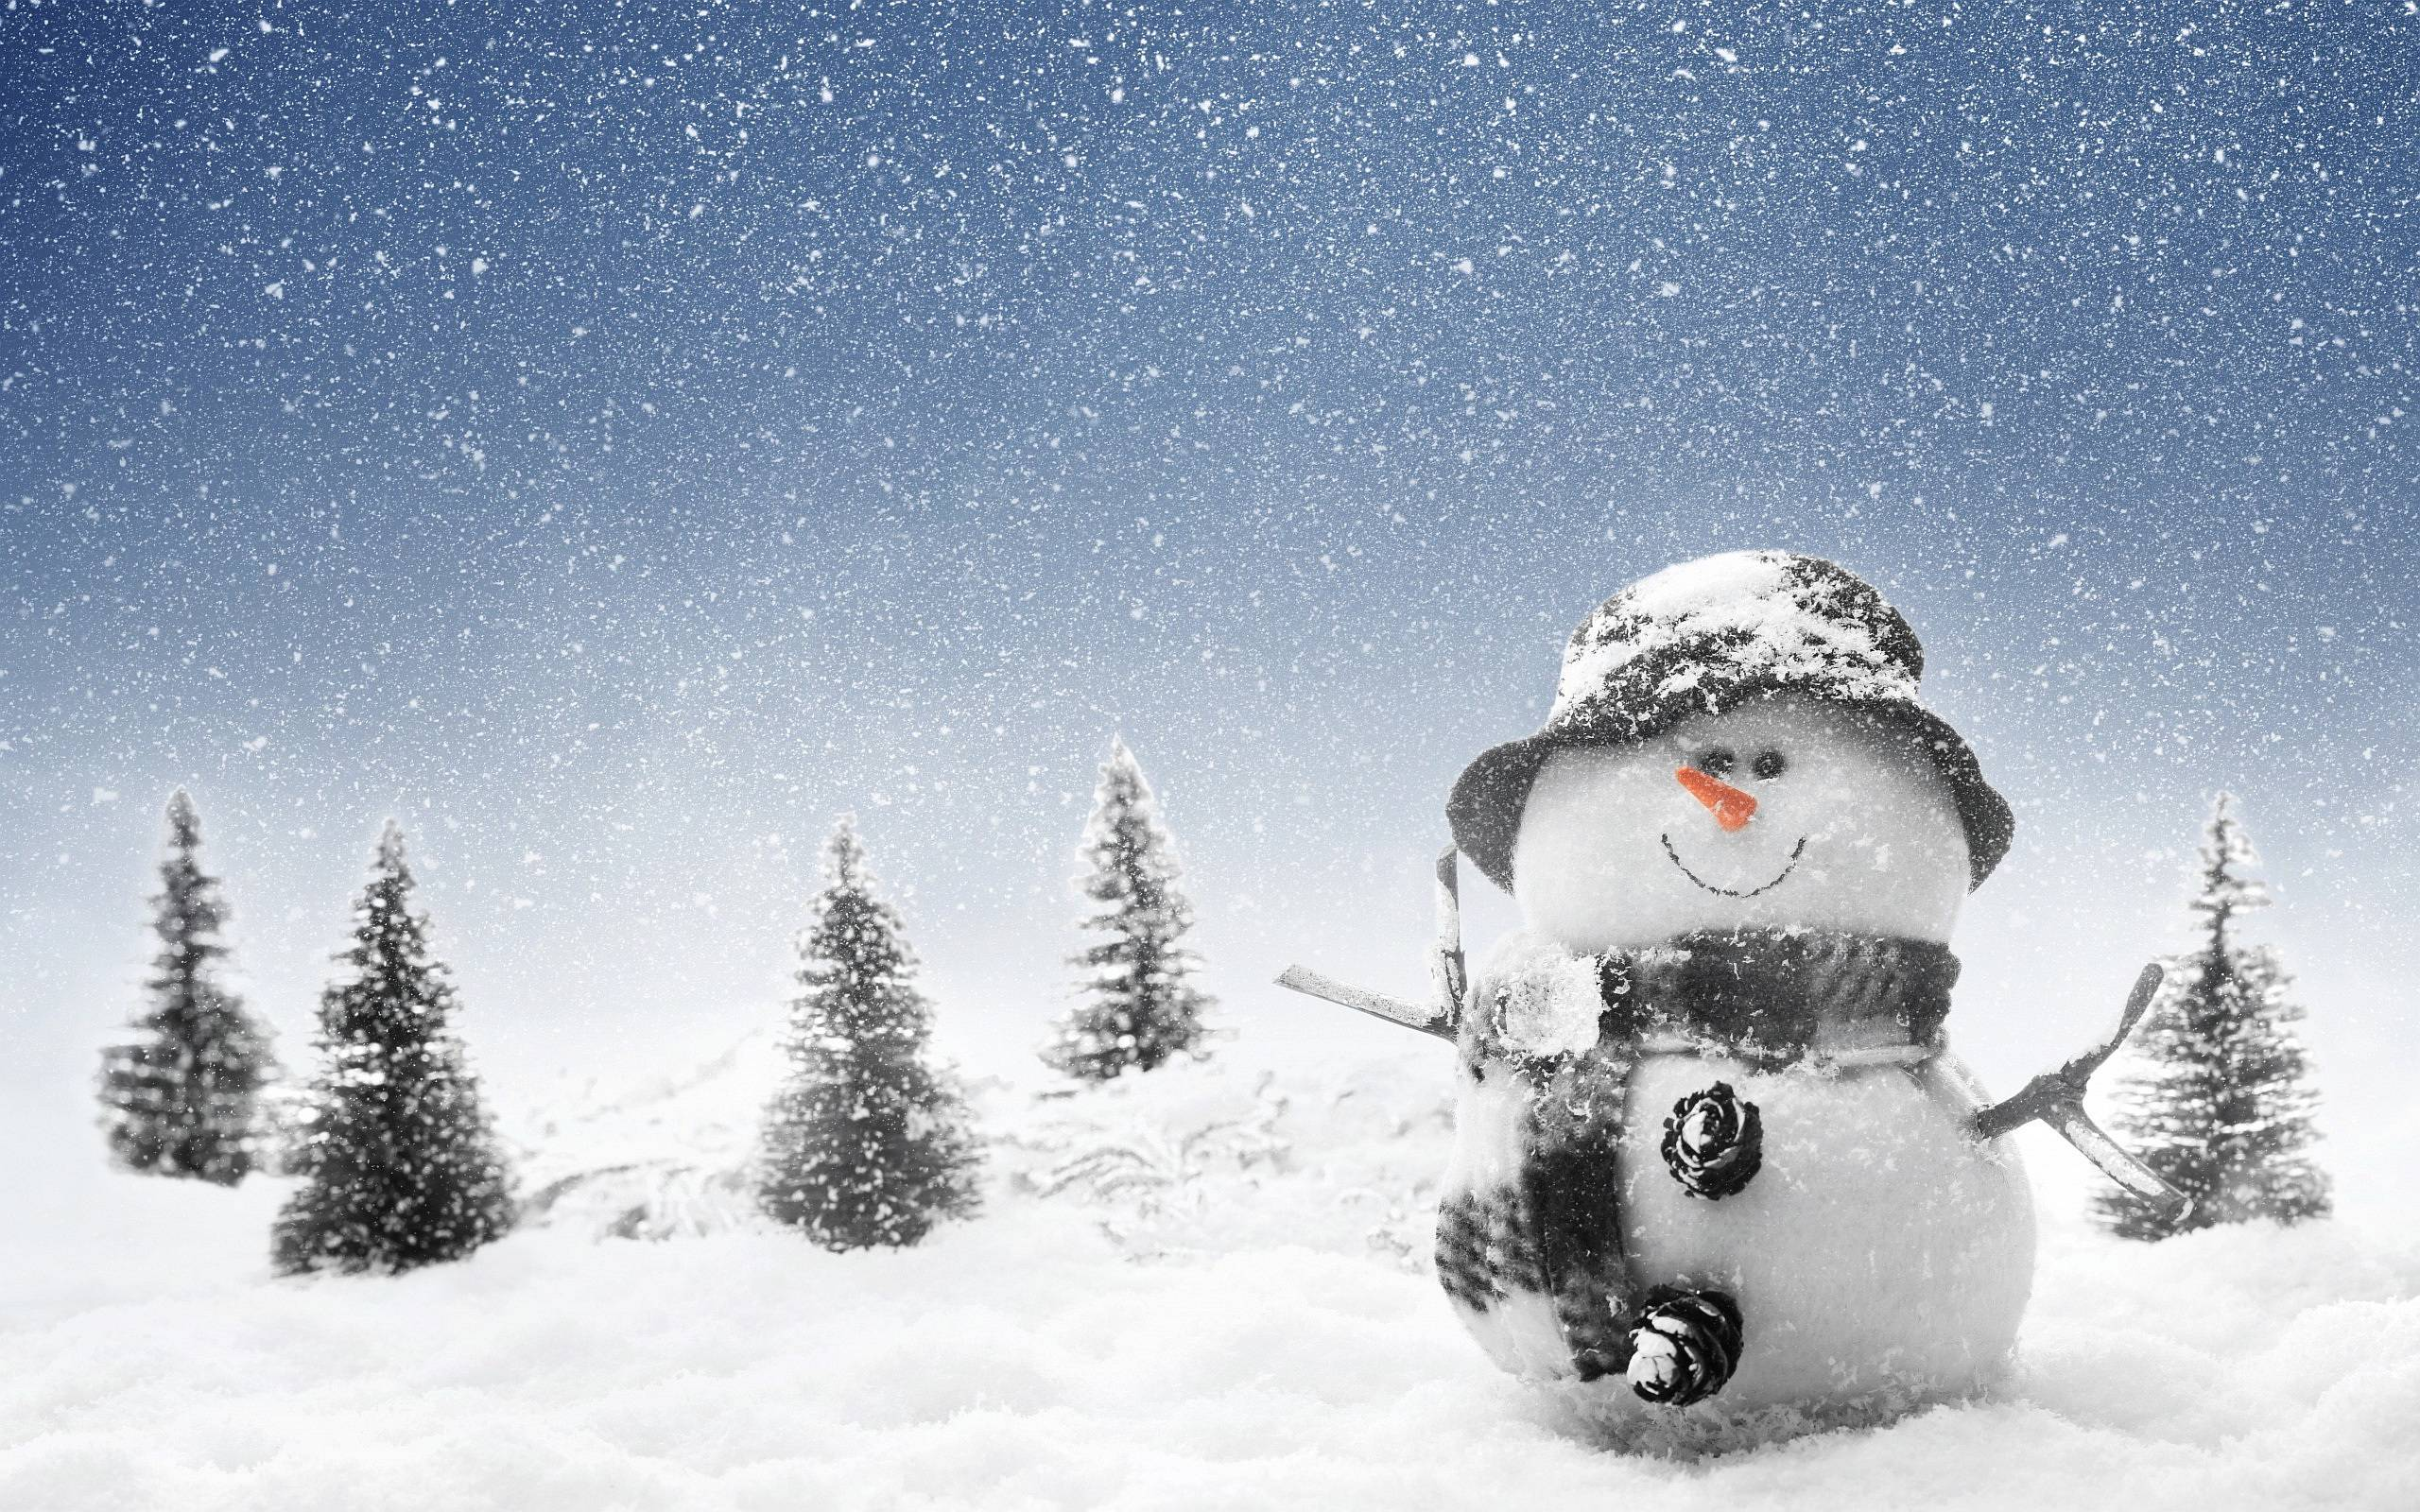 snow man backgrounds